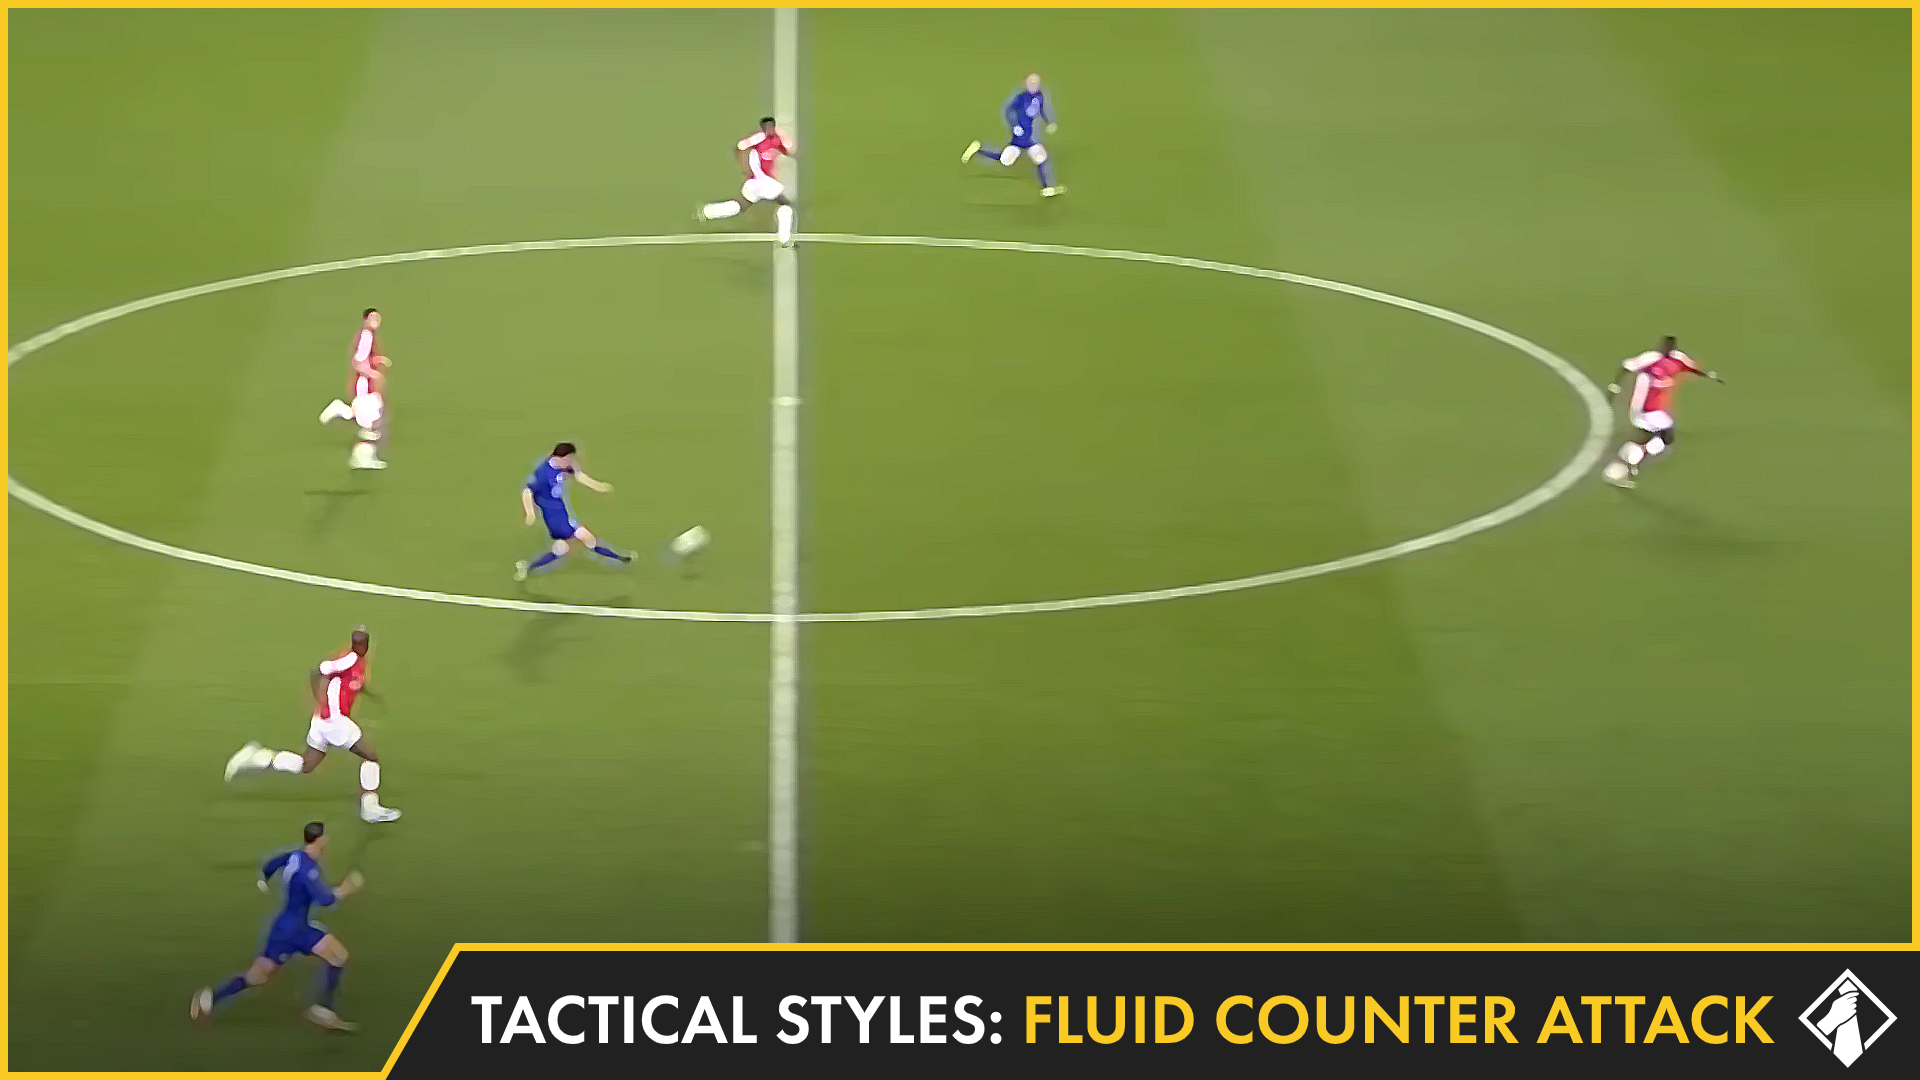 """FM21 - Tactical Styles: Fluid Counter Attack"" feature image"